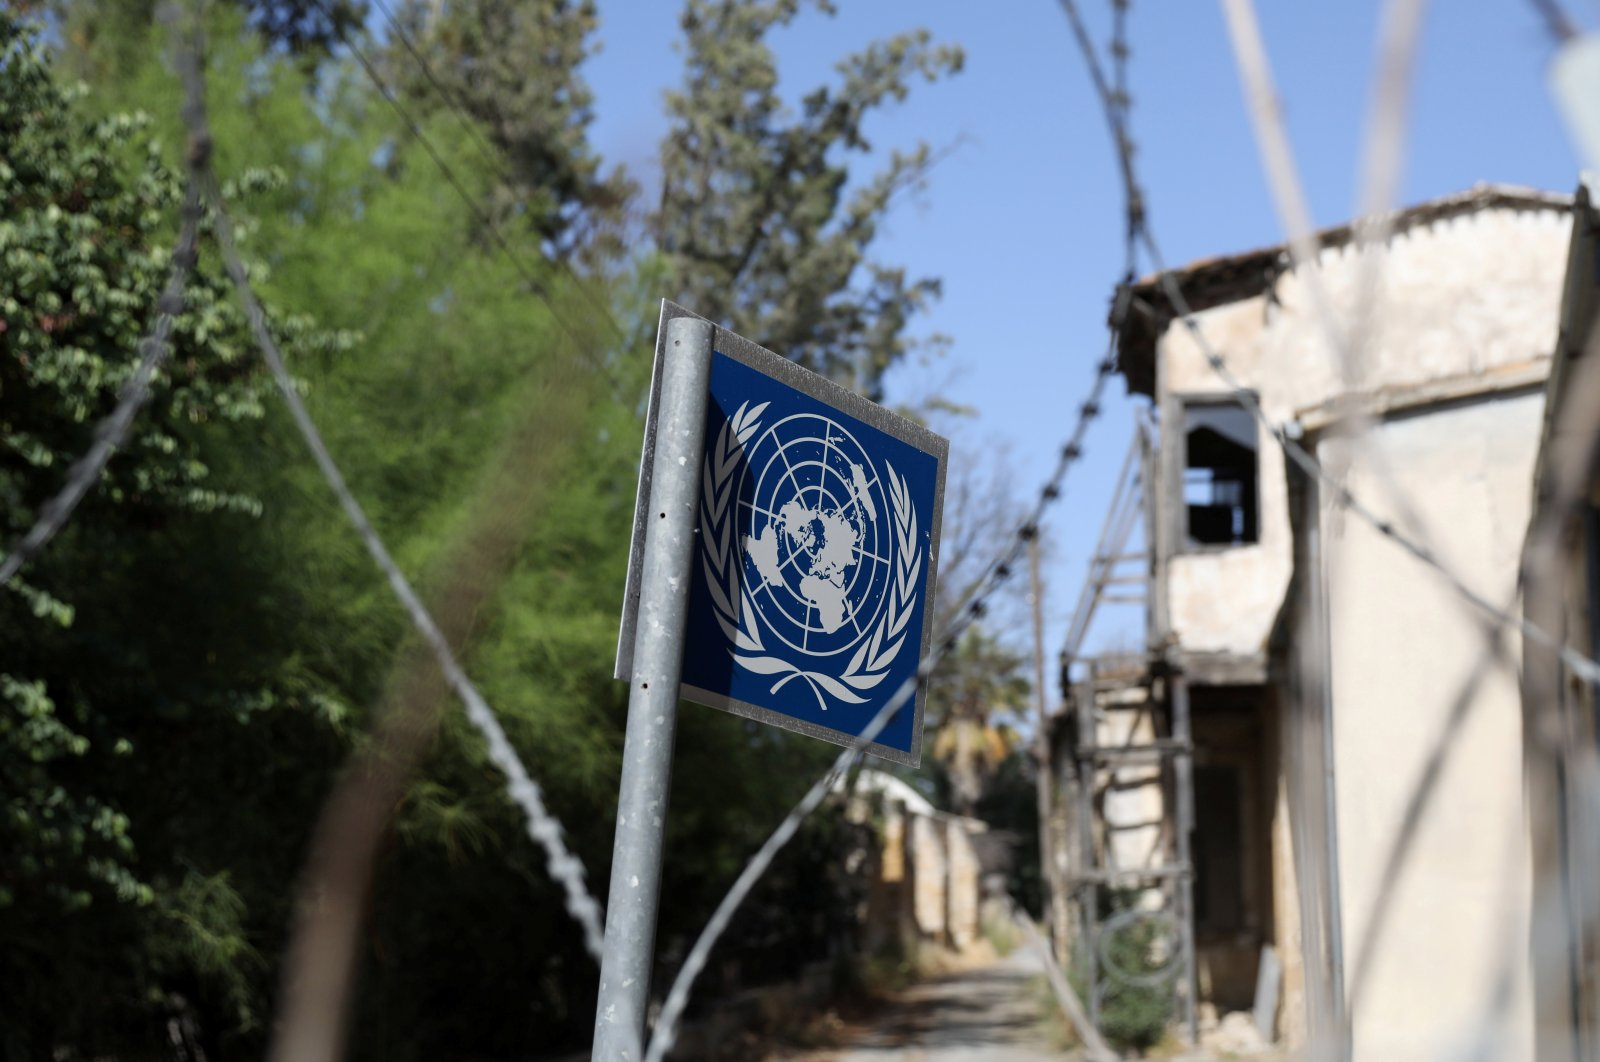 A United Nations sign is seen through barbed wire at the U.N.-controlled buffer zone in Nicosia (Lefkoşa), Cyprus April 28, 2021. (REUTERS Photo)